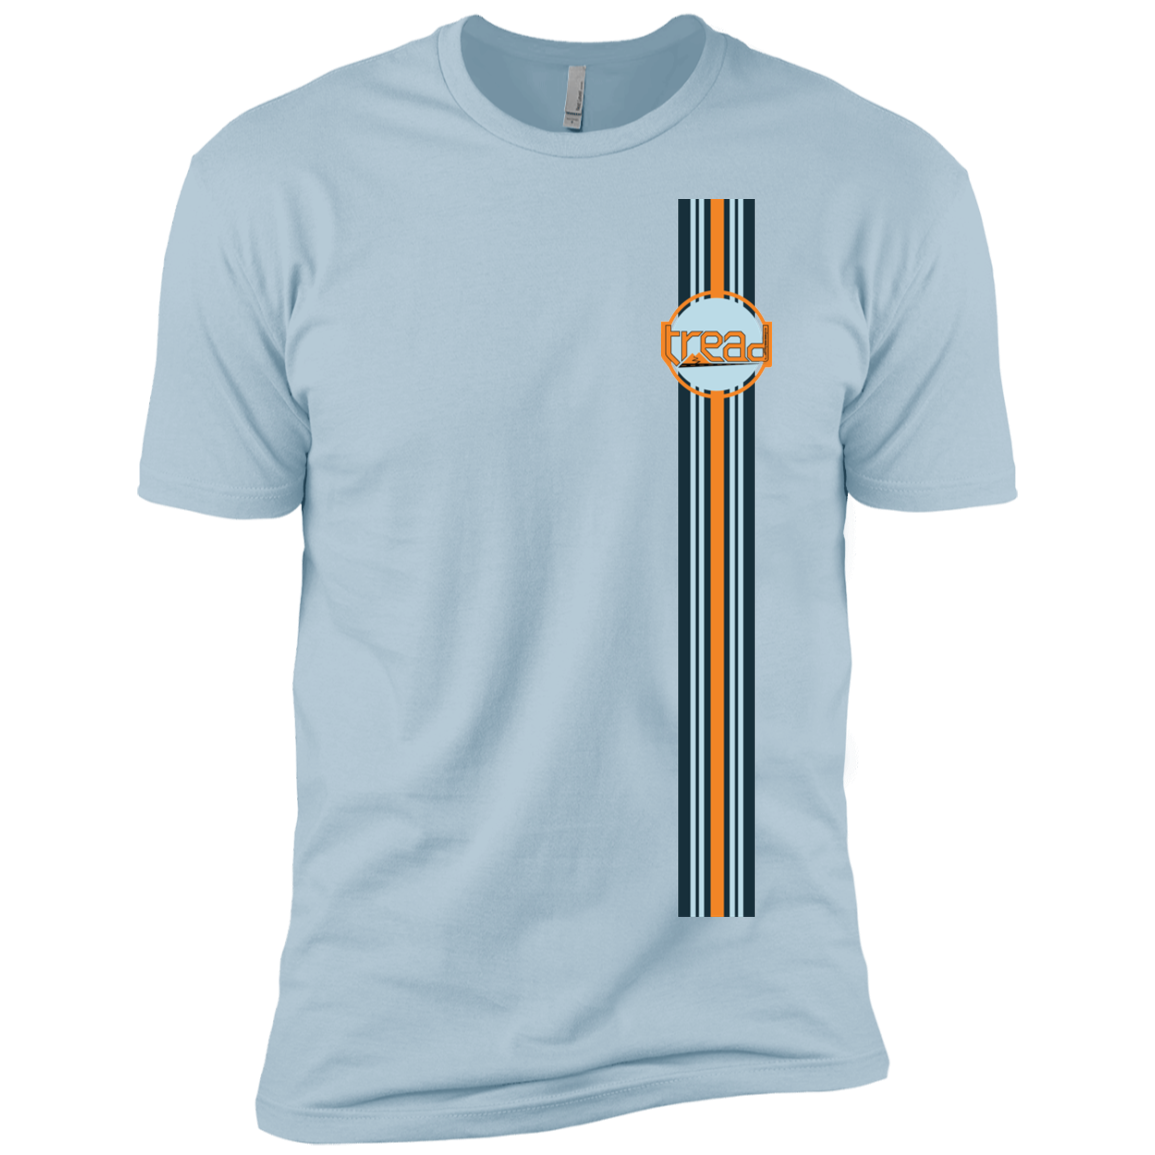 TREAD DESIGN | GULF RACING homage  Premium Short Sleeve T-Shirt